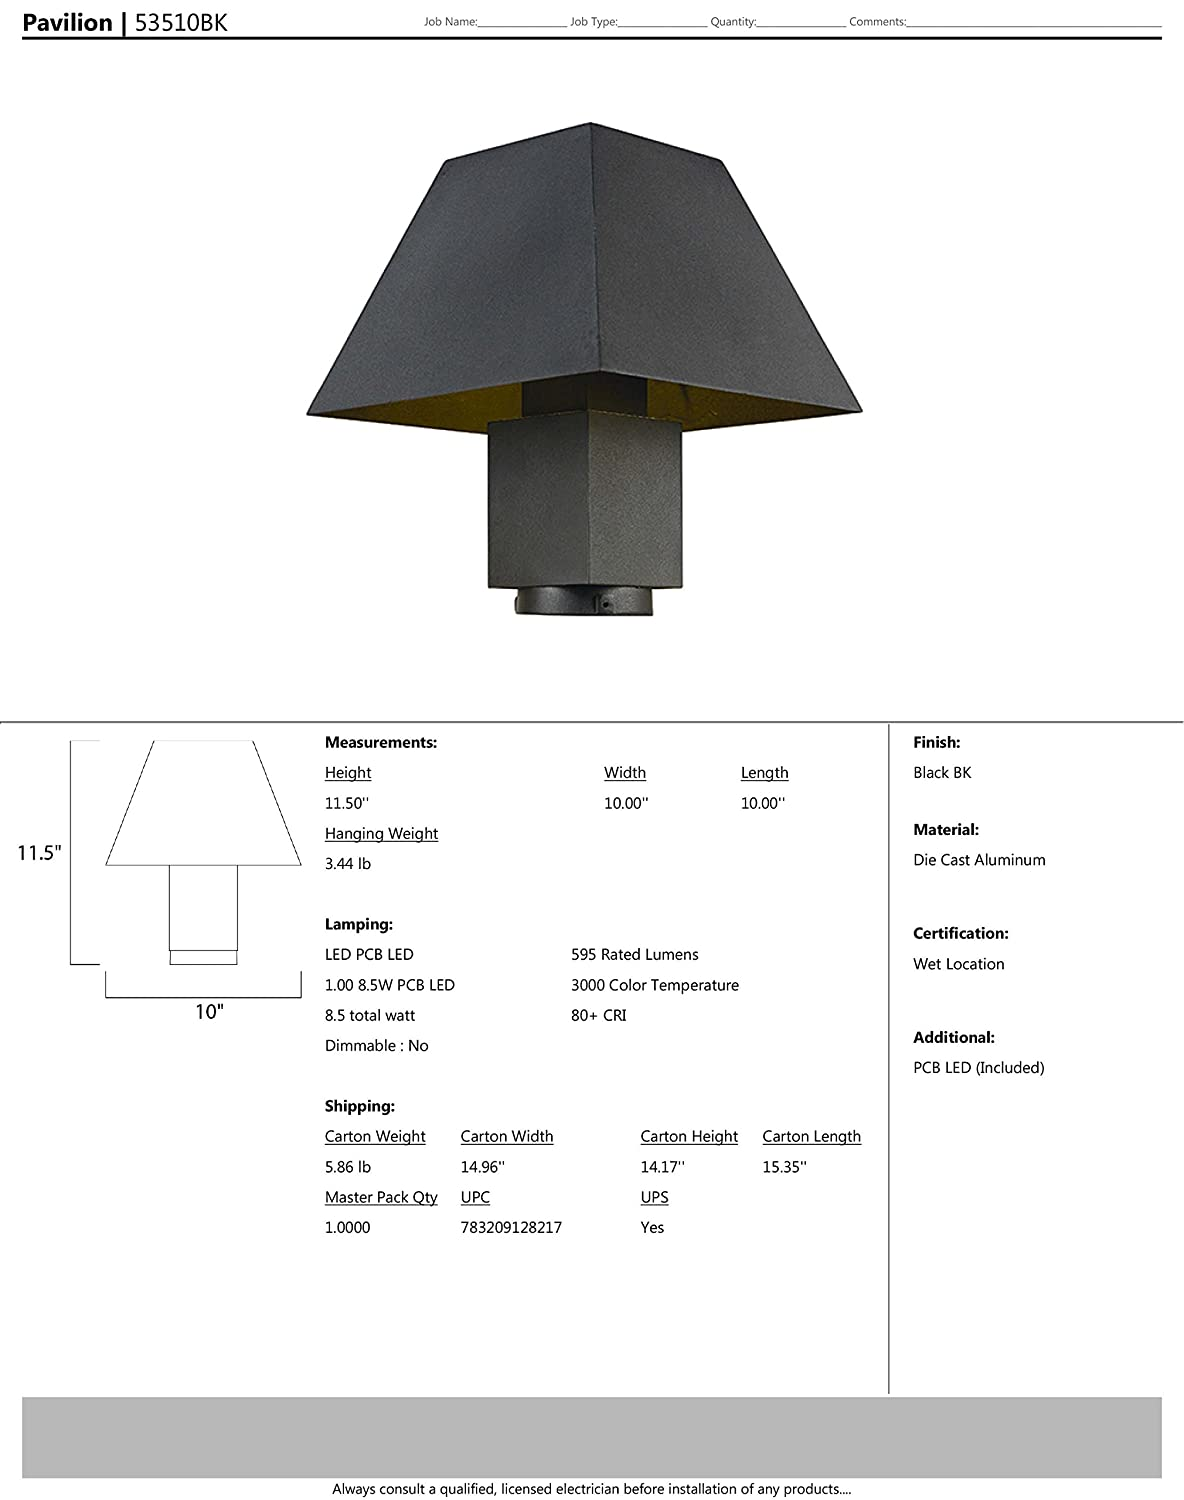 Shade Material PCB LED Bulb Rated Lumens Standard Dimmable Damp Safety Rating 100W Max. Maxim 53510BK Pavilion LED Outdoor Post Mount Black Finish Glass